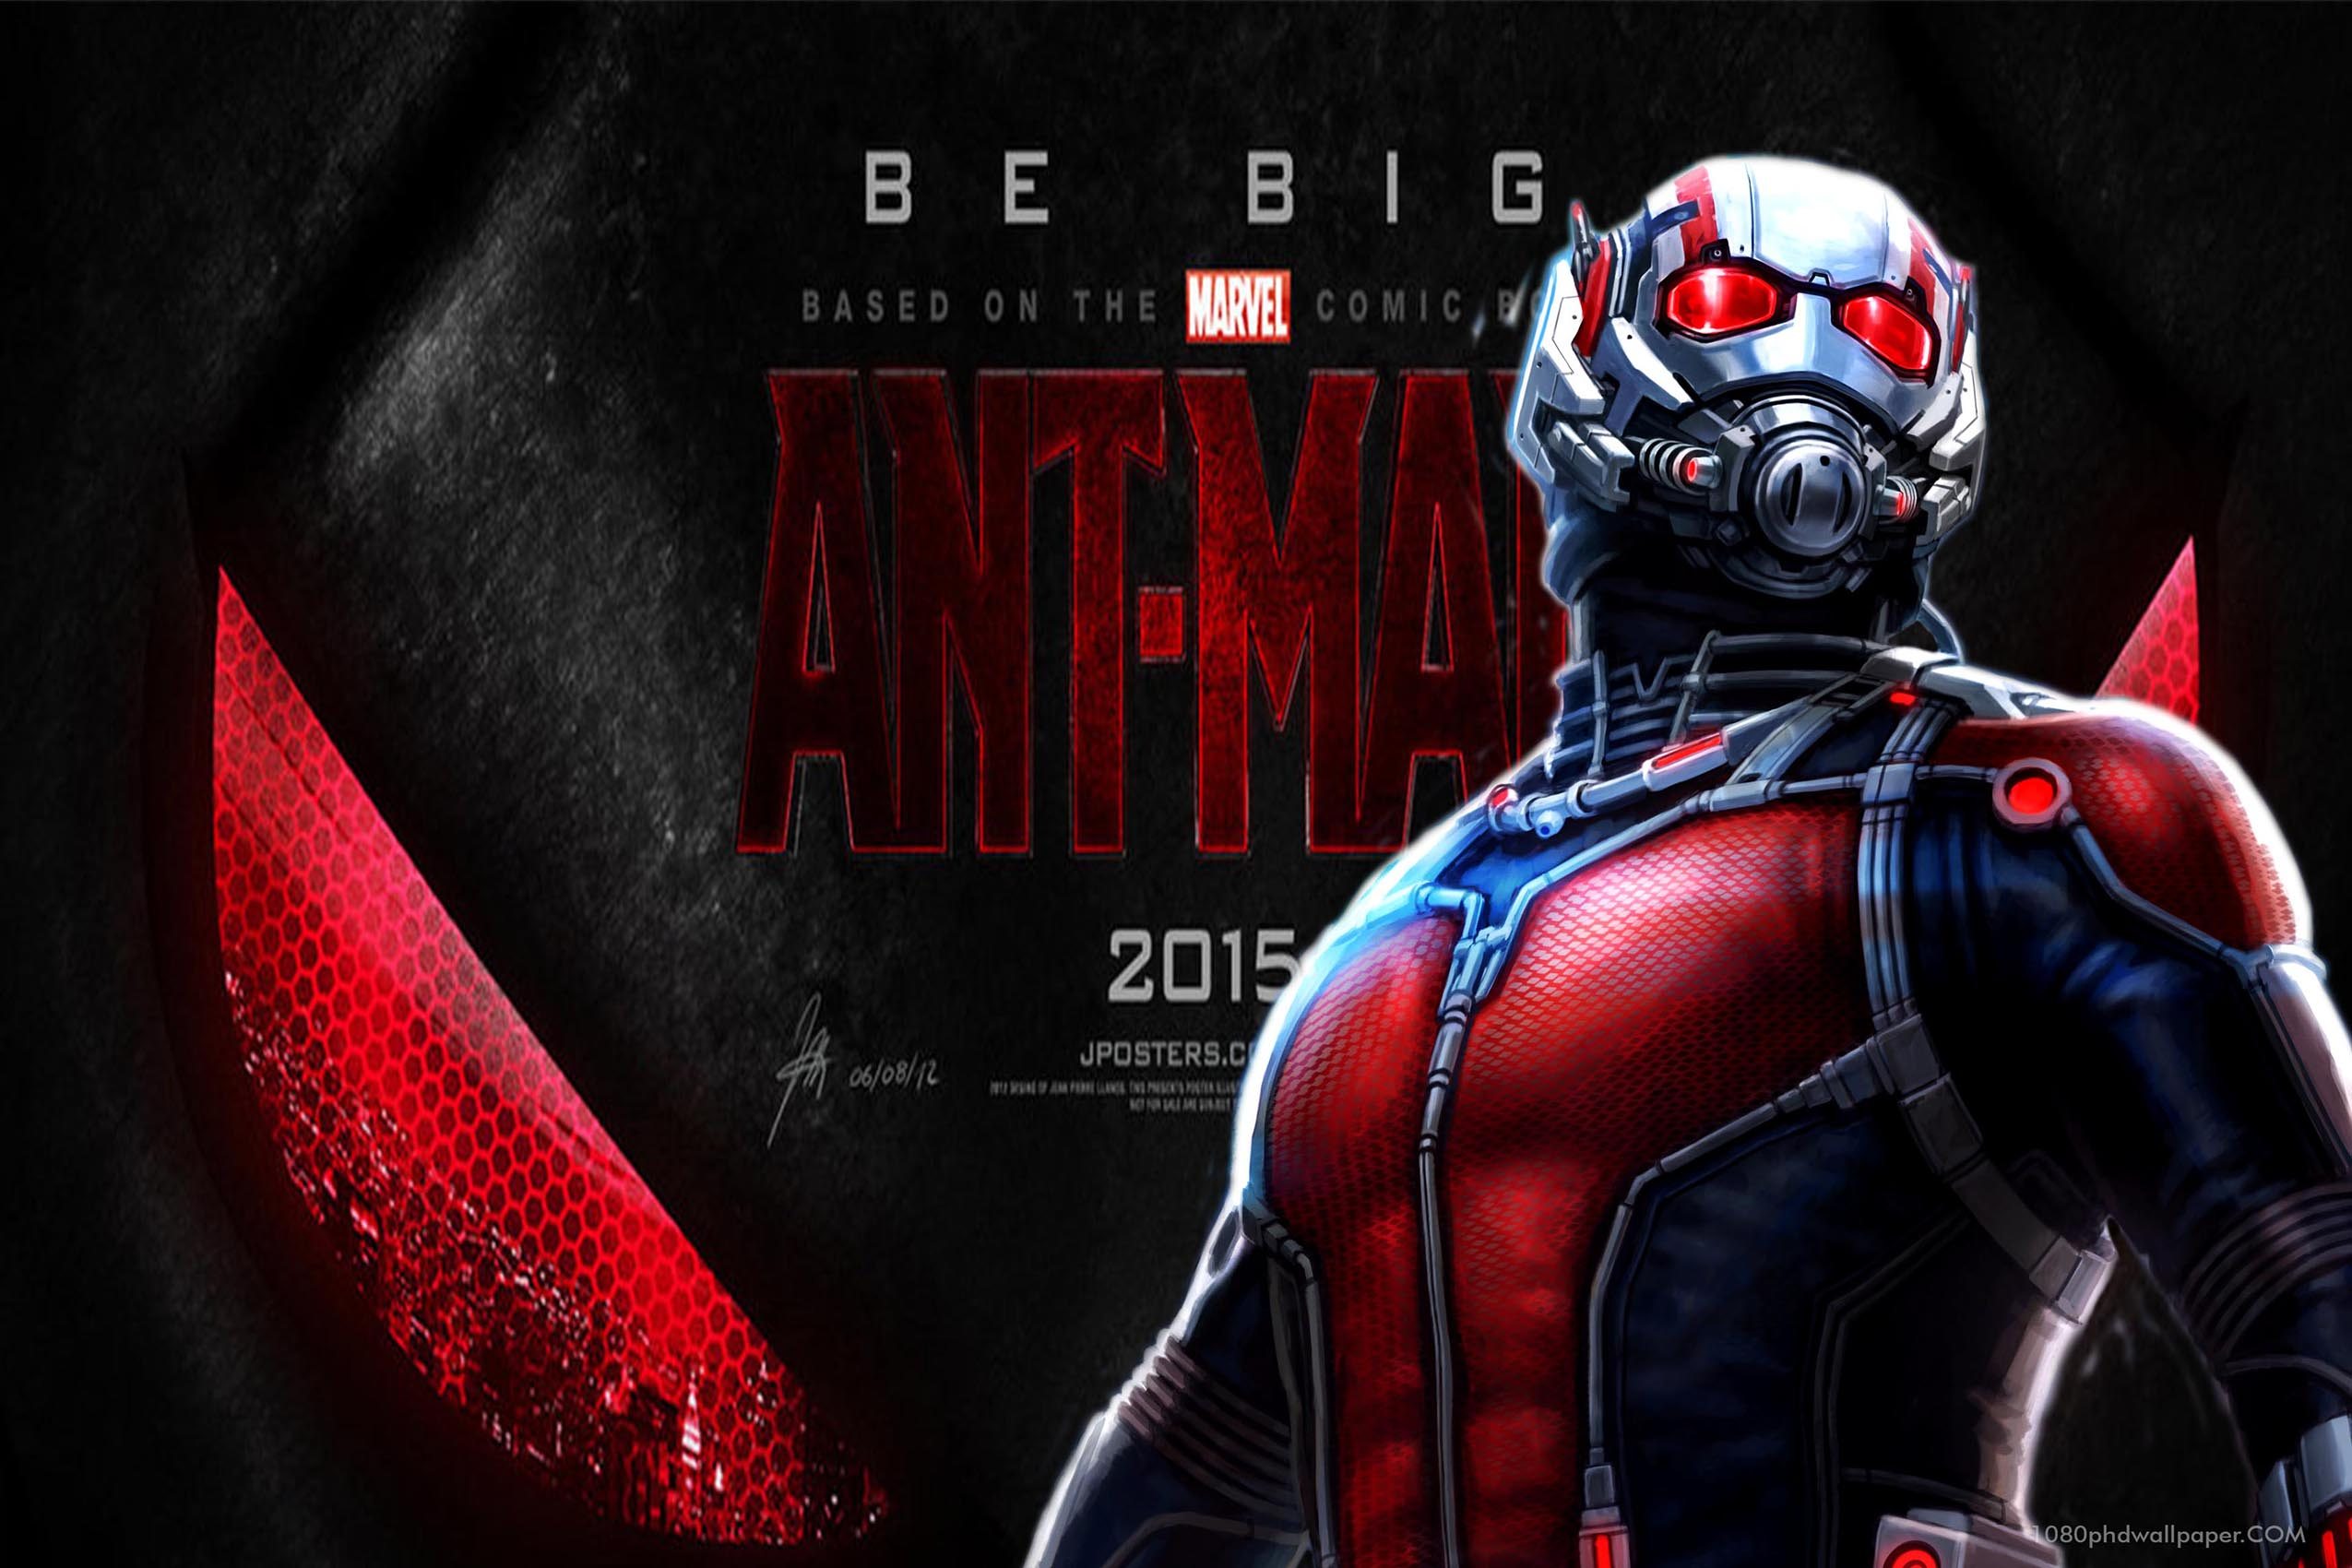 Download Ant man 2015 Movie in torrent and directWatch ant man 2015 2550x1700